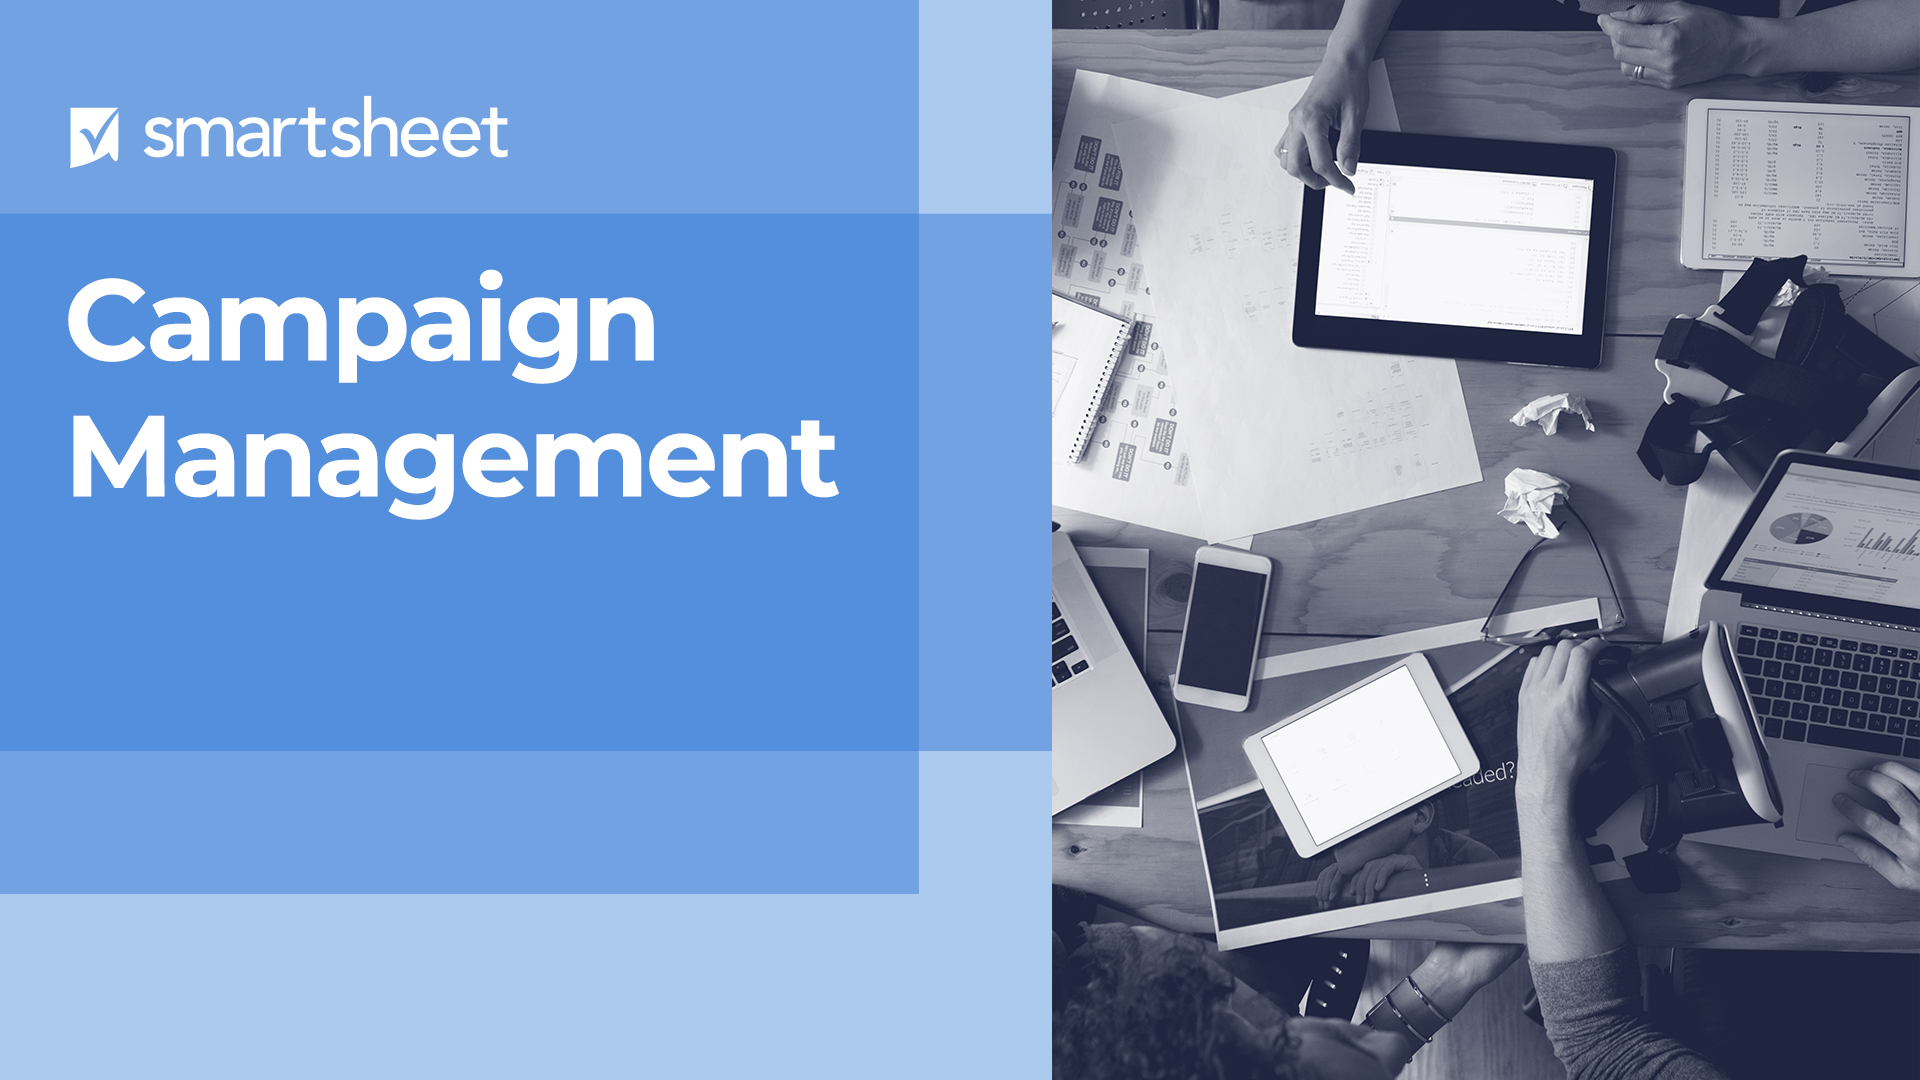 Campaign Management for Marketing